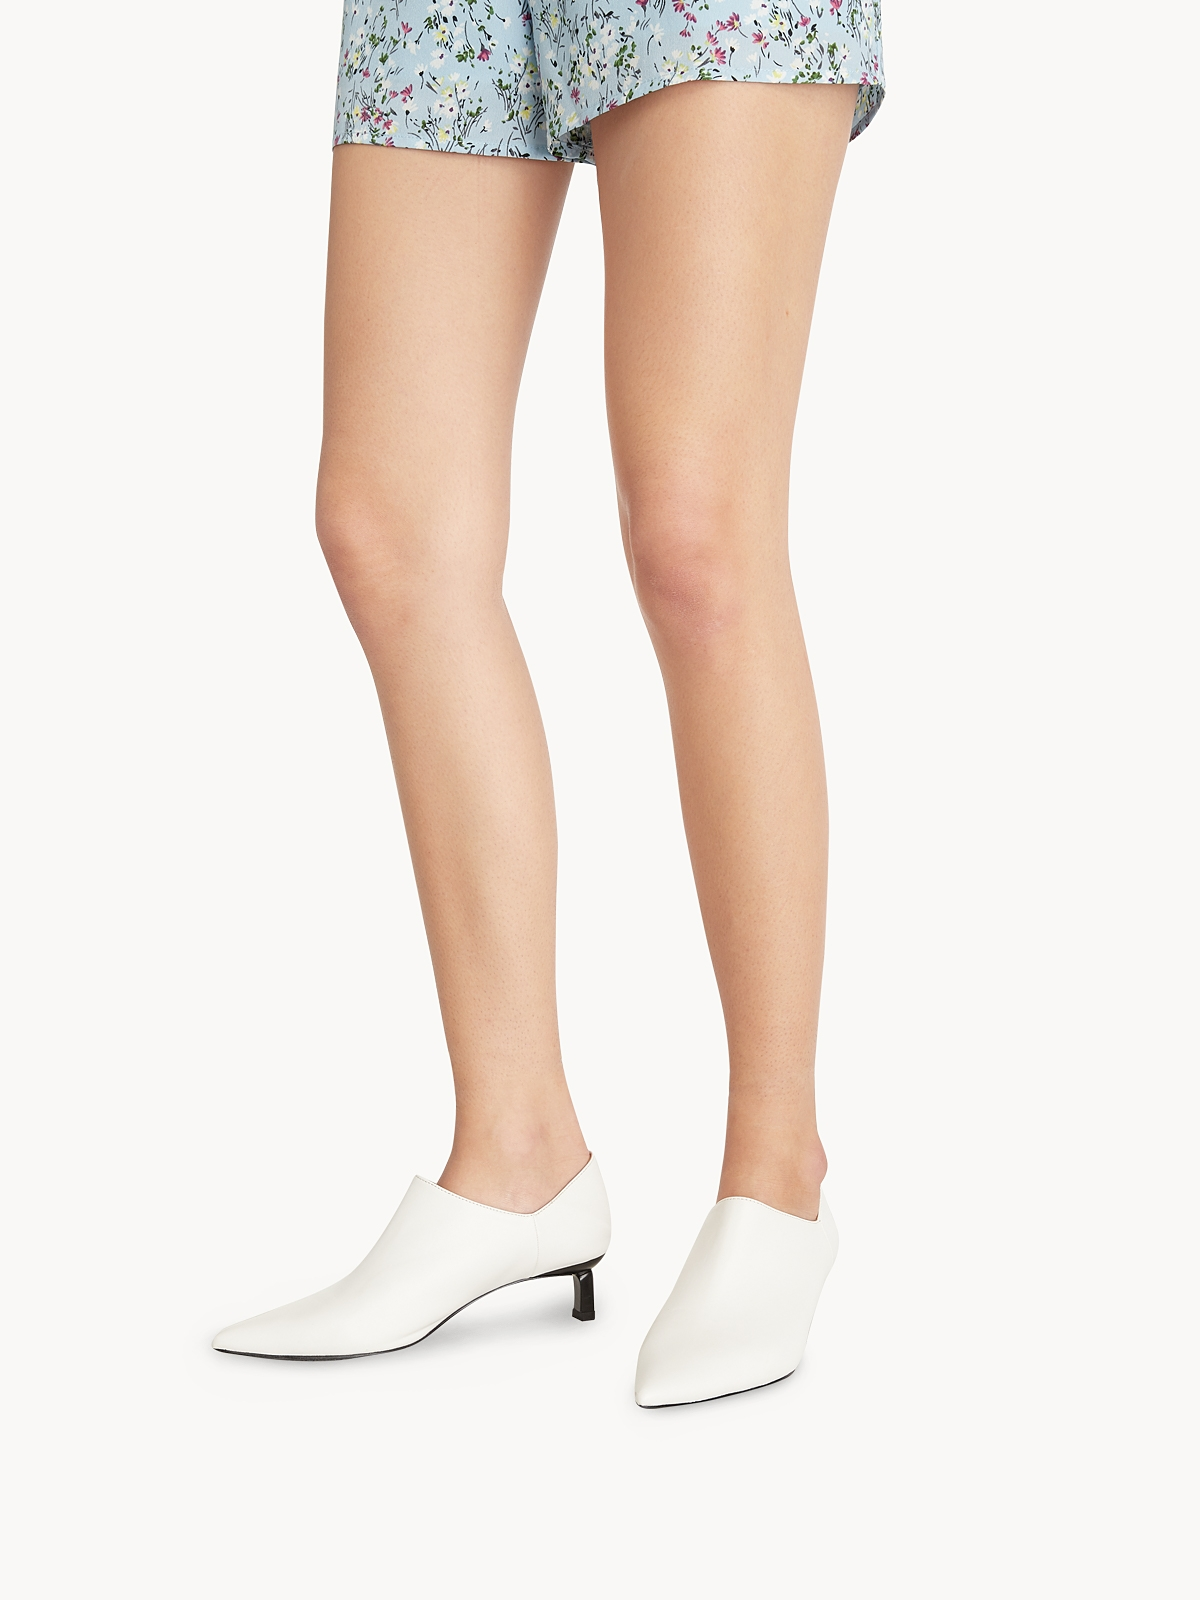 Starkela Low Ankle Boots White